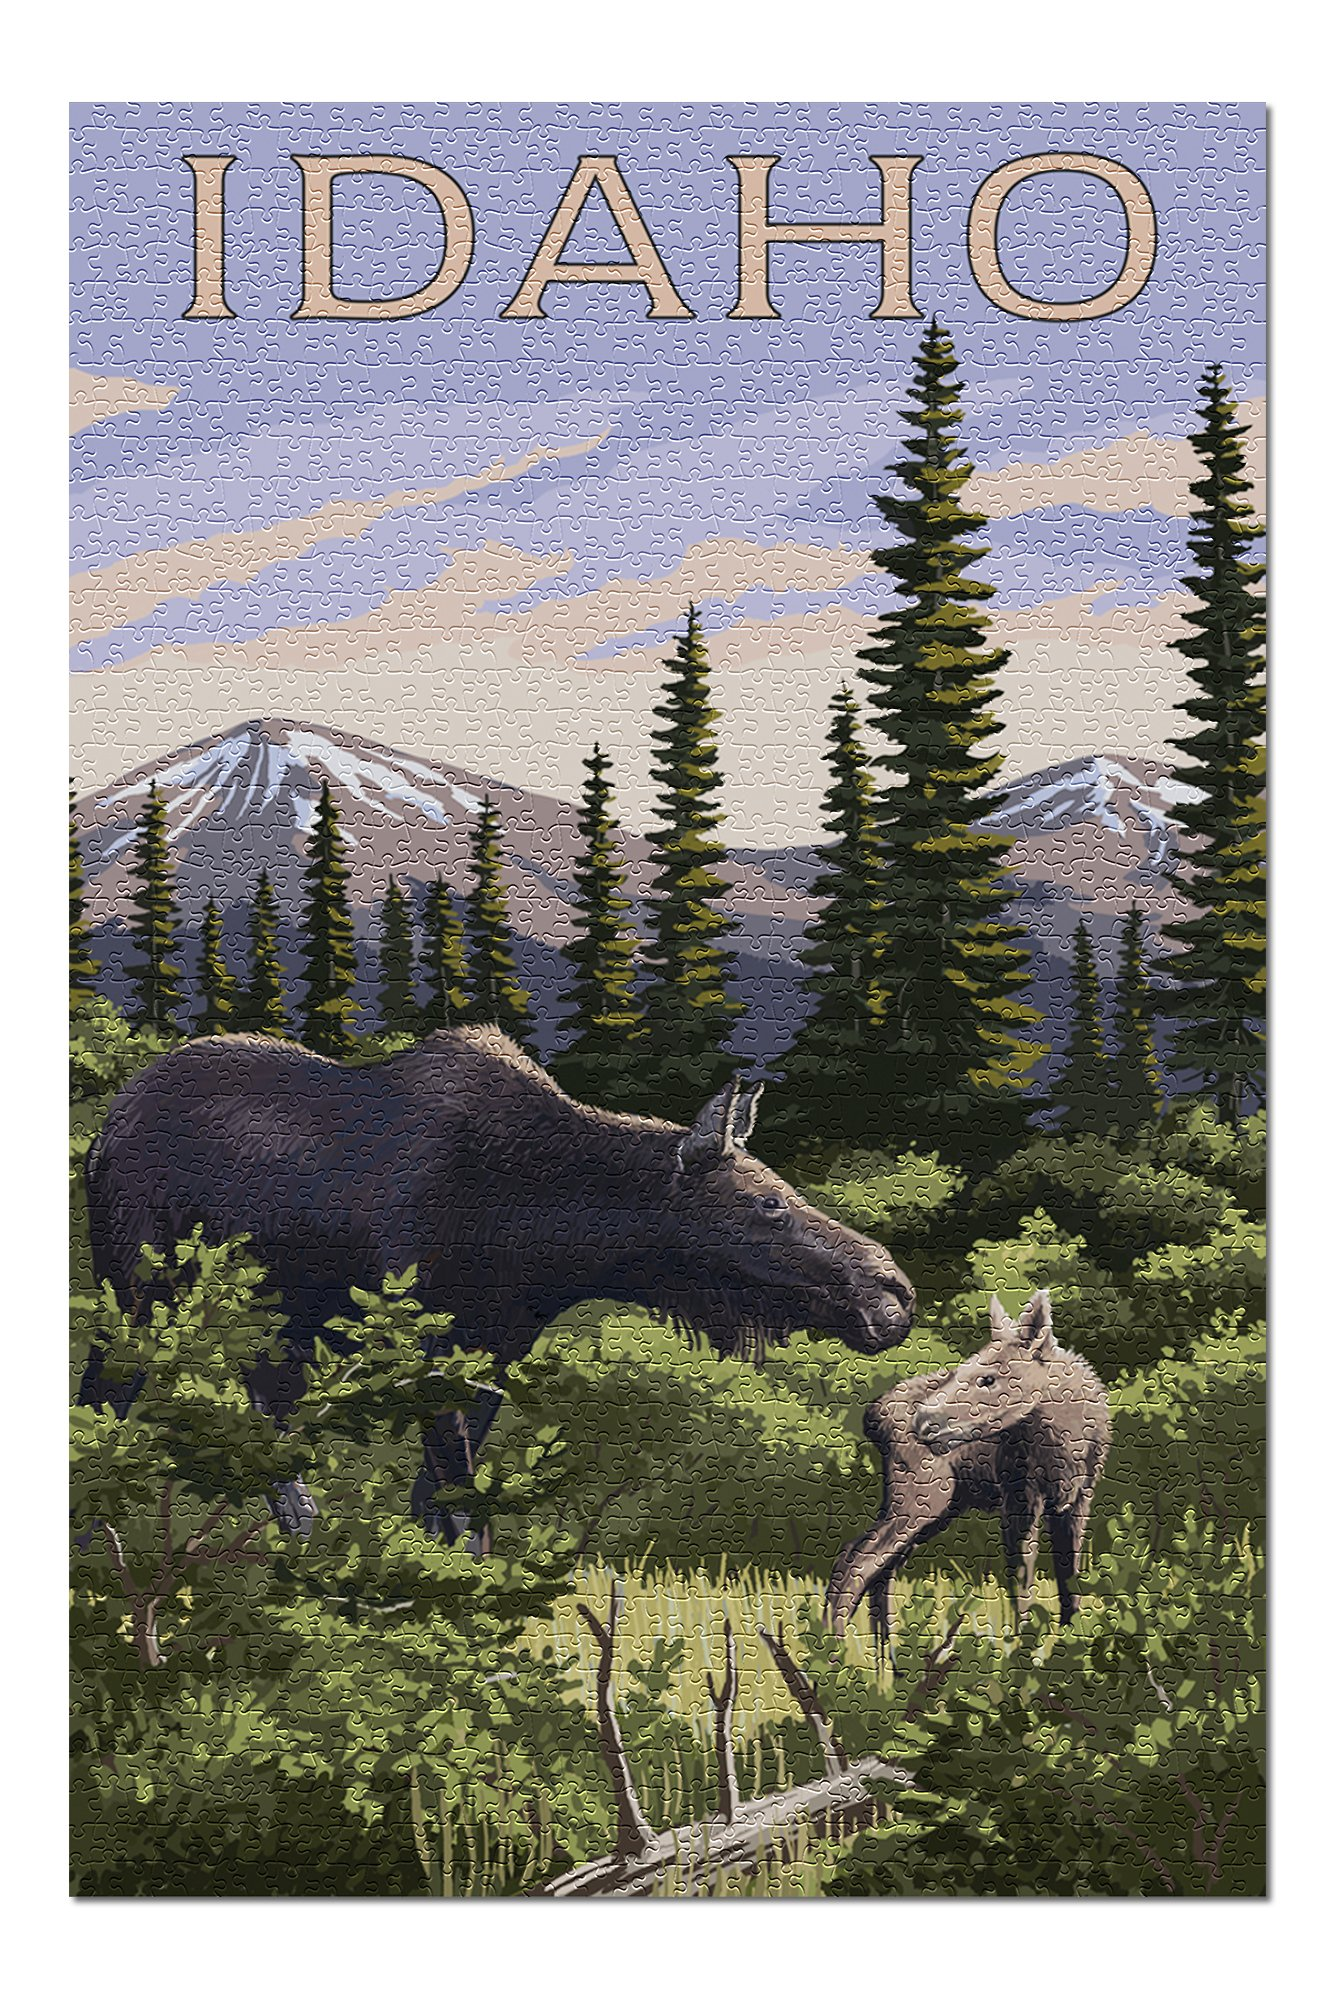 Idaho - Moose and Baby (Premium 1000 Piece Jigsaw Puzzle for Adults, 20x30, Made in USA!)